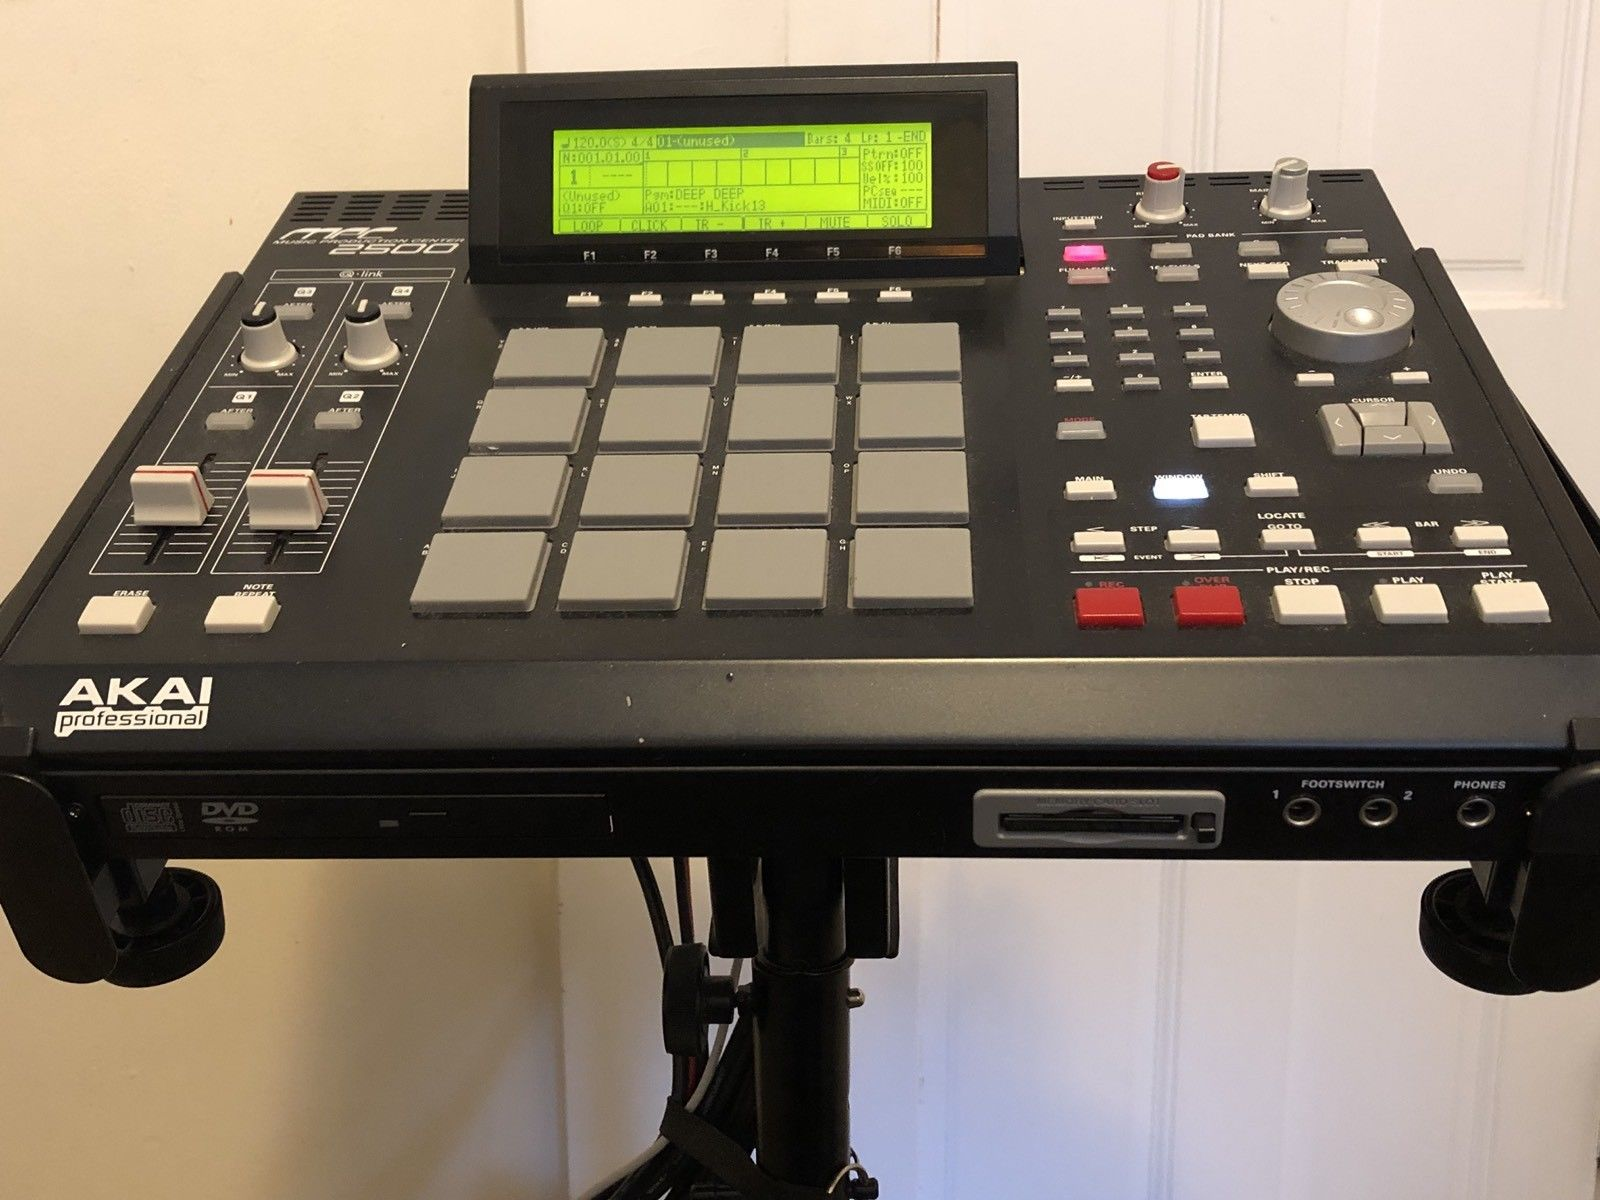 MPCHunter » Blog Archive » Akai MPC 2500 with 128MB RAM, DVD-ROM Drive